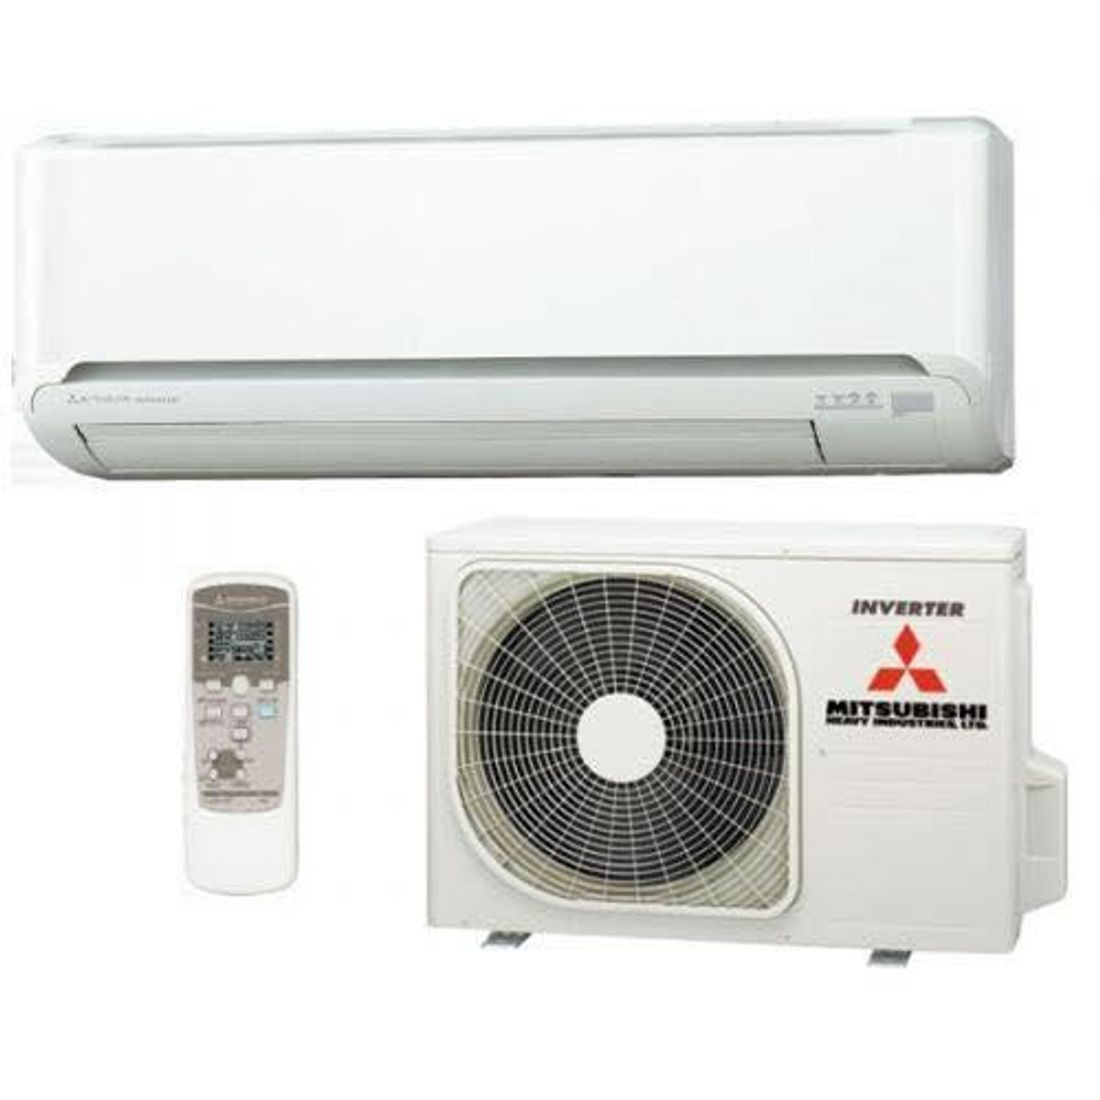 Heating options for any kind of home for Efficient heating options